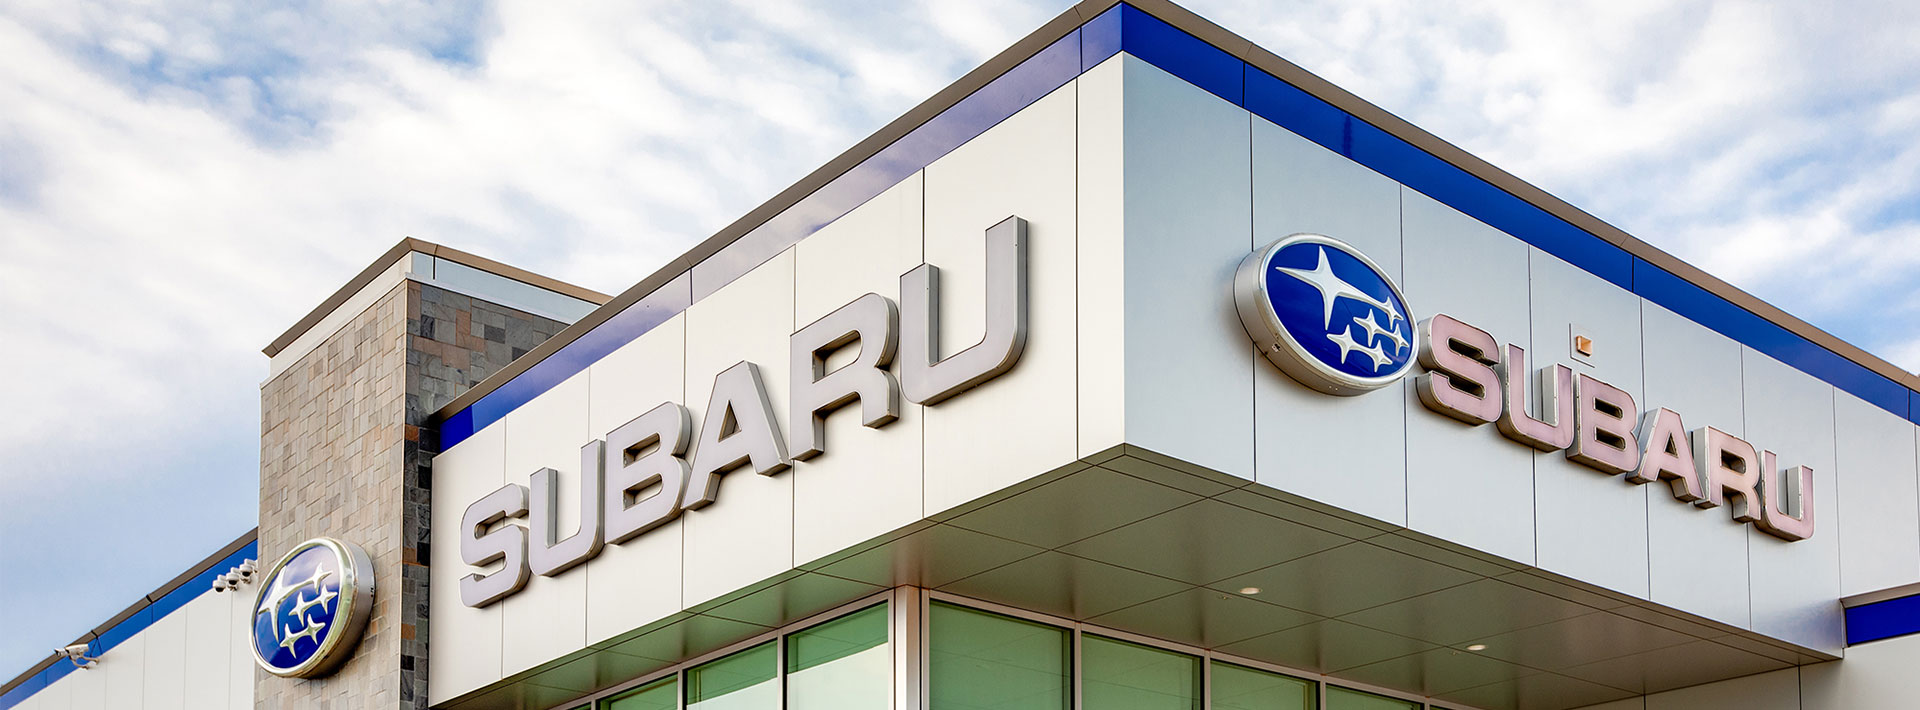 Bob Moore Subaru - a Subaru dealership in Oklahoma City, OK.